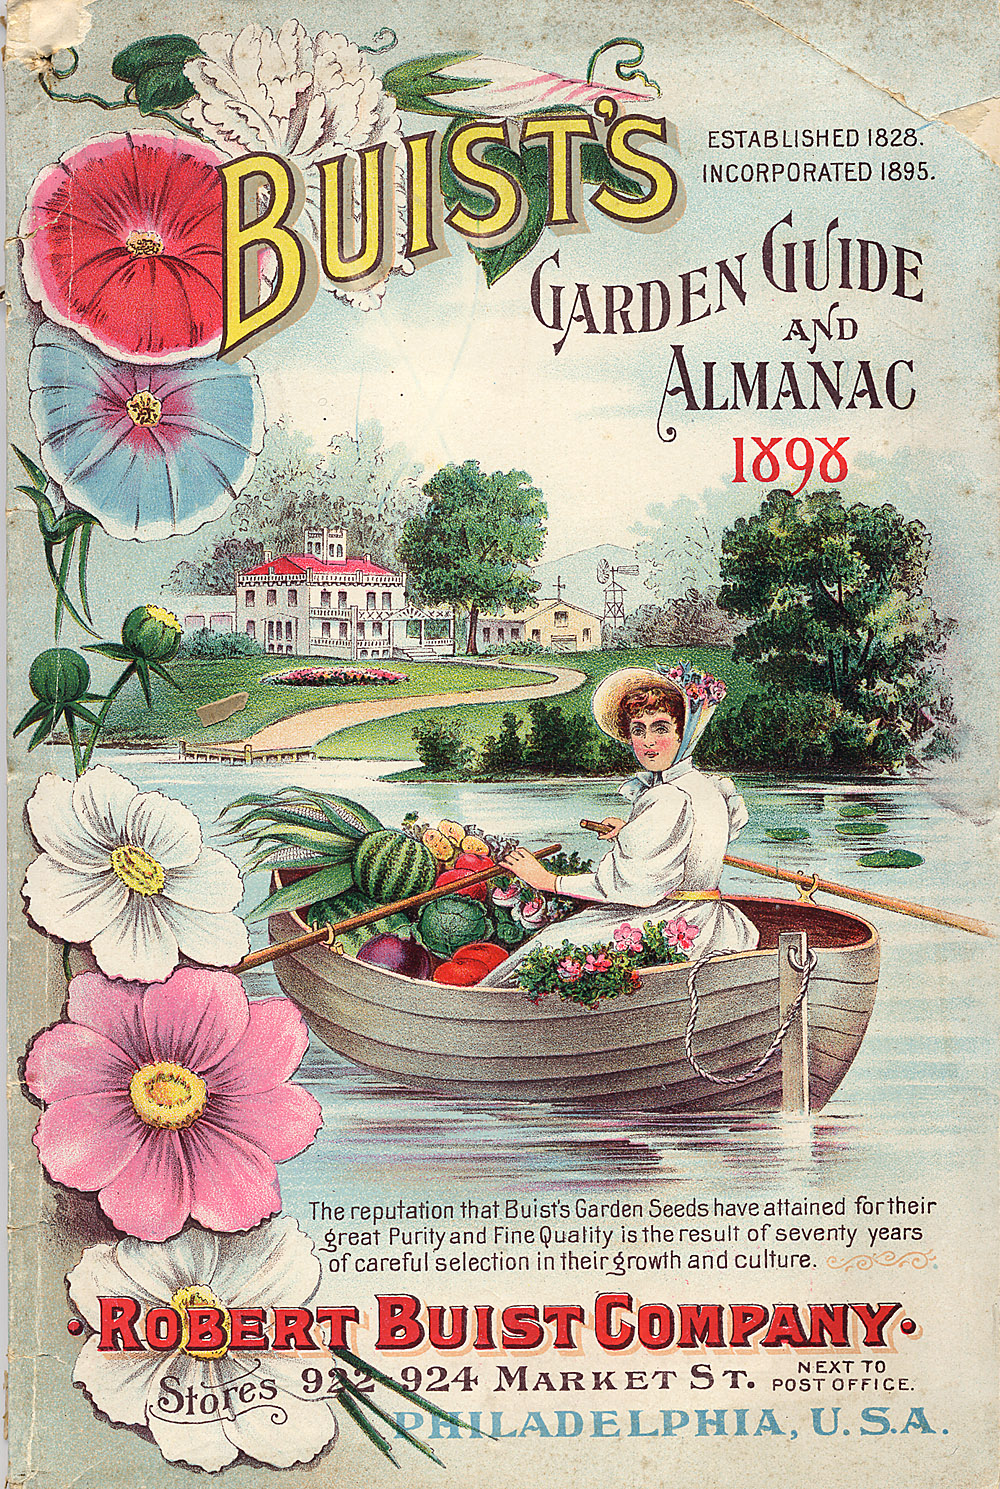 Buist Seed Company, Buist's Garden Guide and Almanac 1898